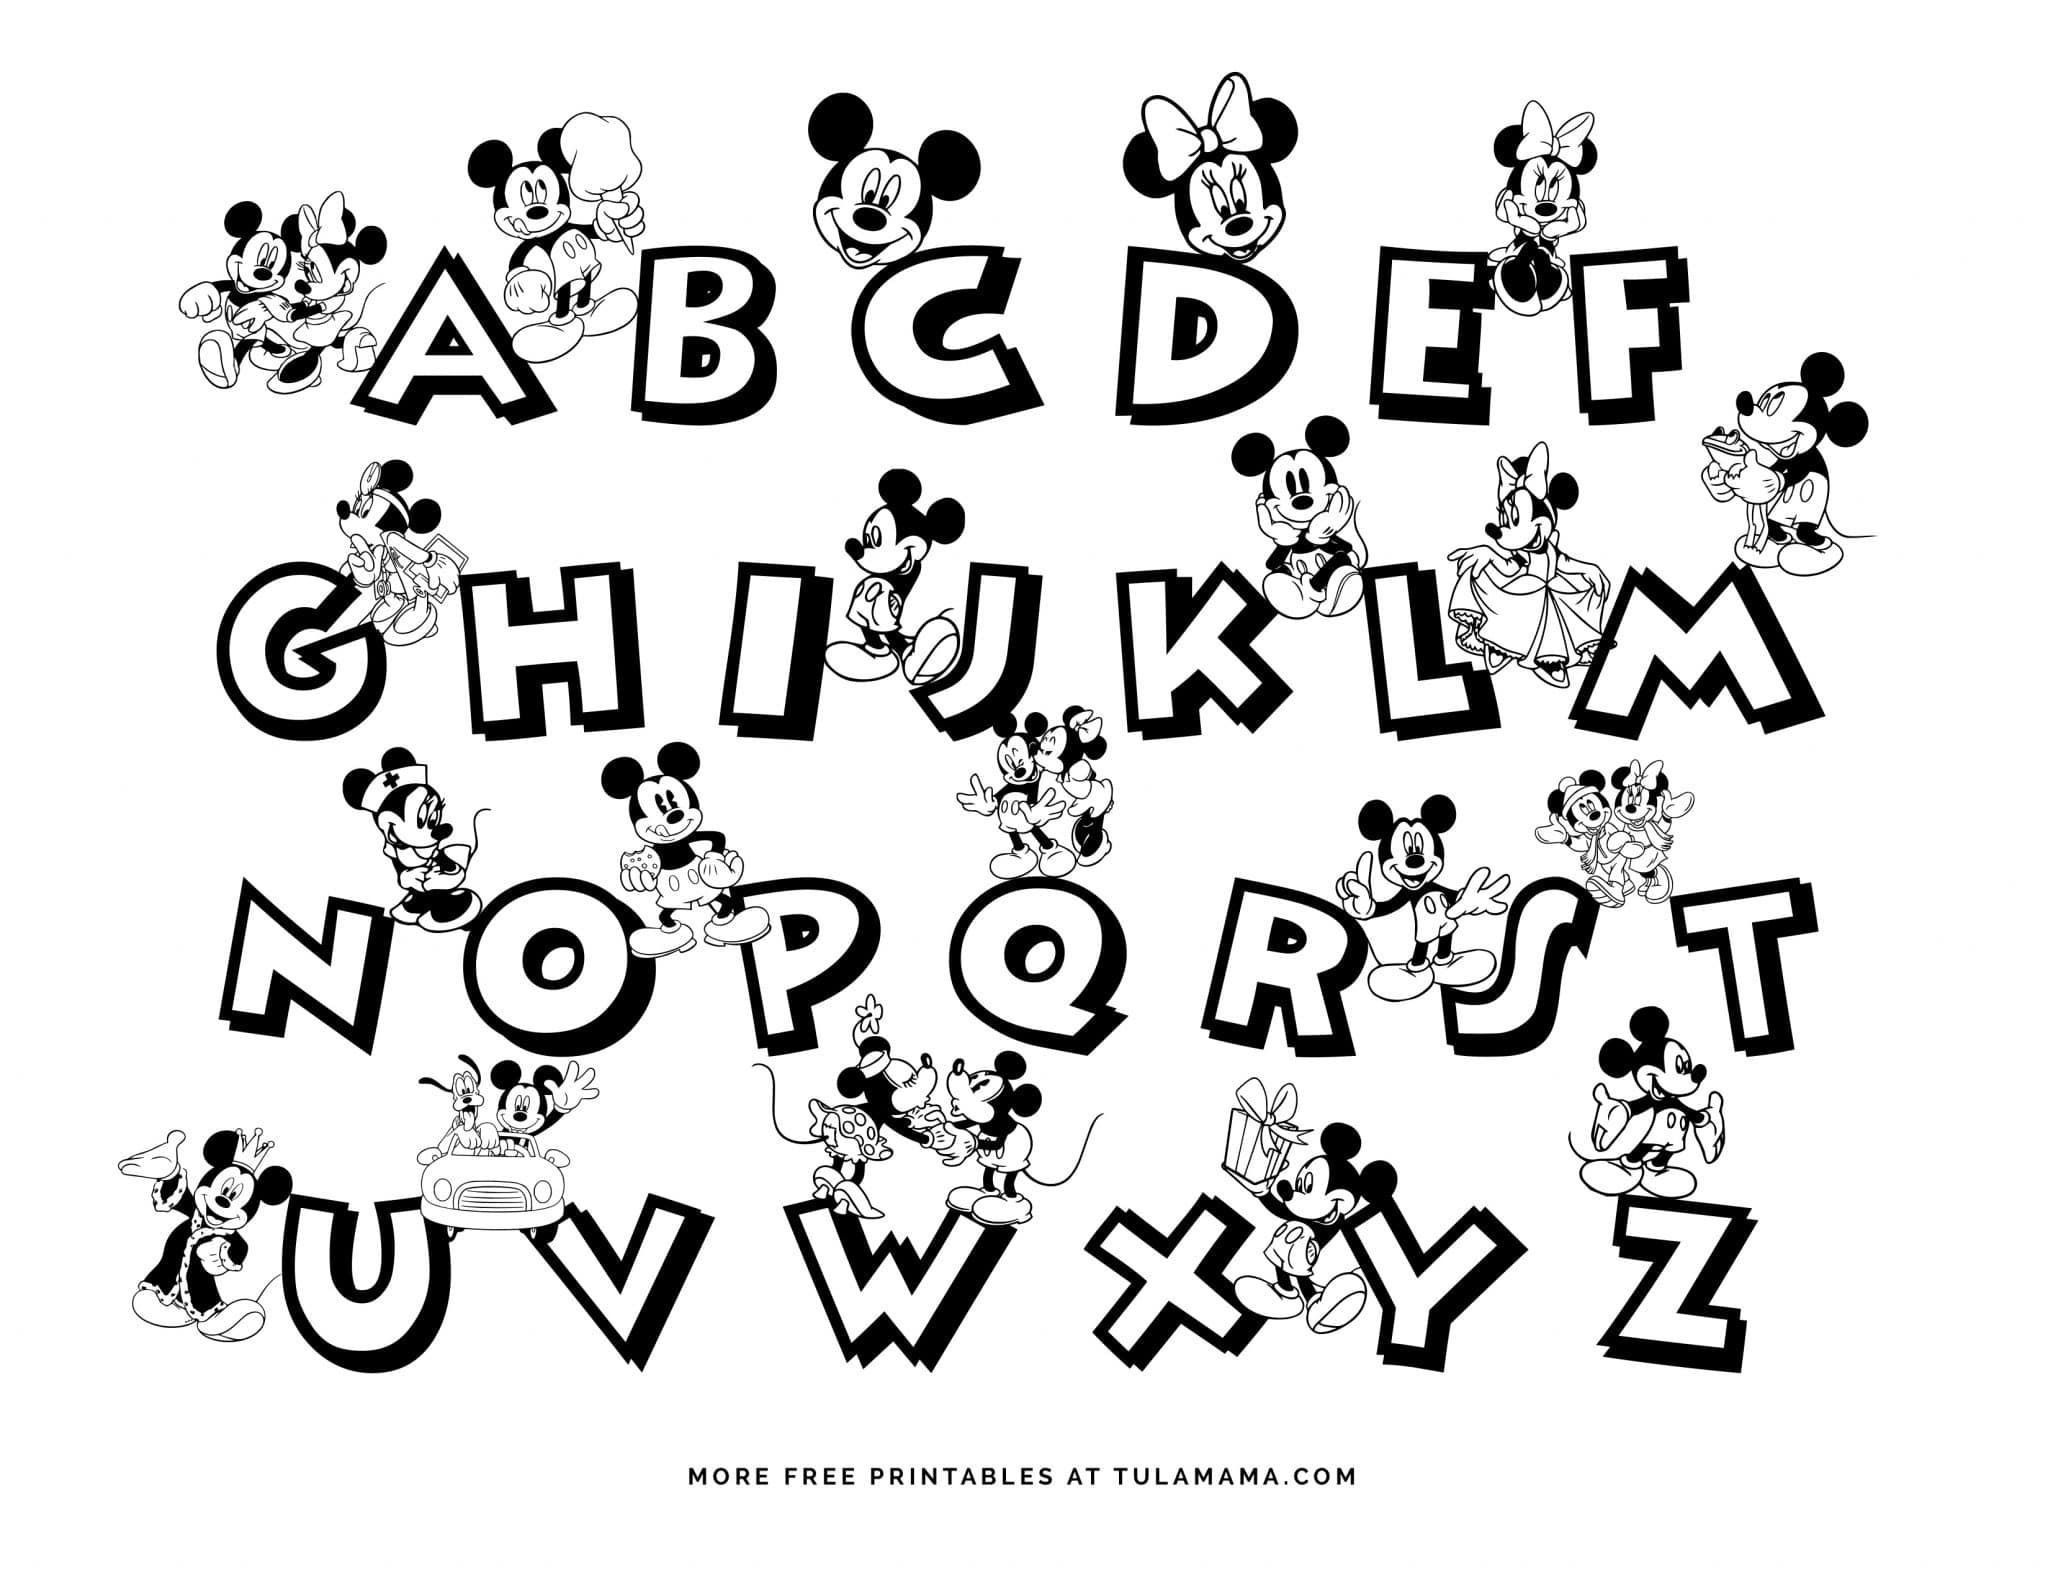 Free Printable Mickey Mouse Abc Coloring Pages In 2021 Abc Coloring Pages Abc Coloring Mickey Mouse Abc [ 1583 x 2048 Pixel ]